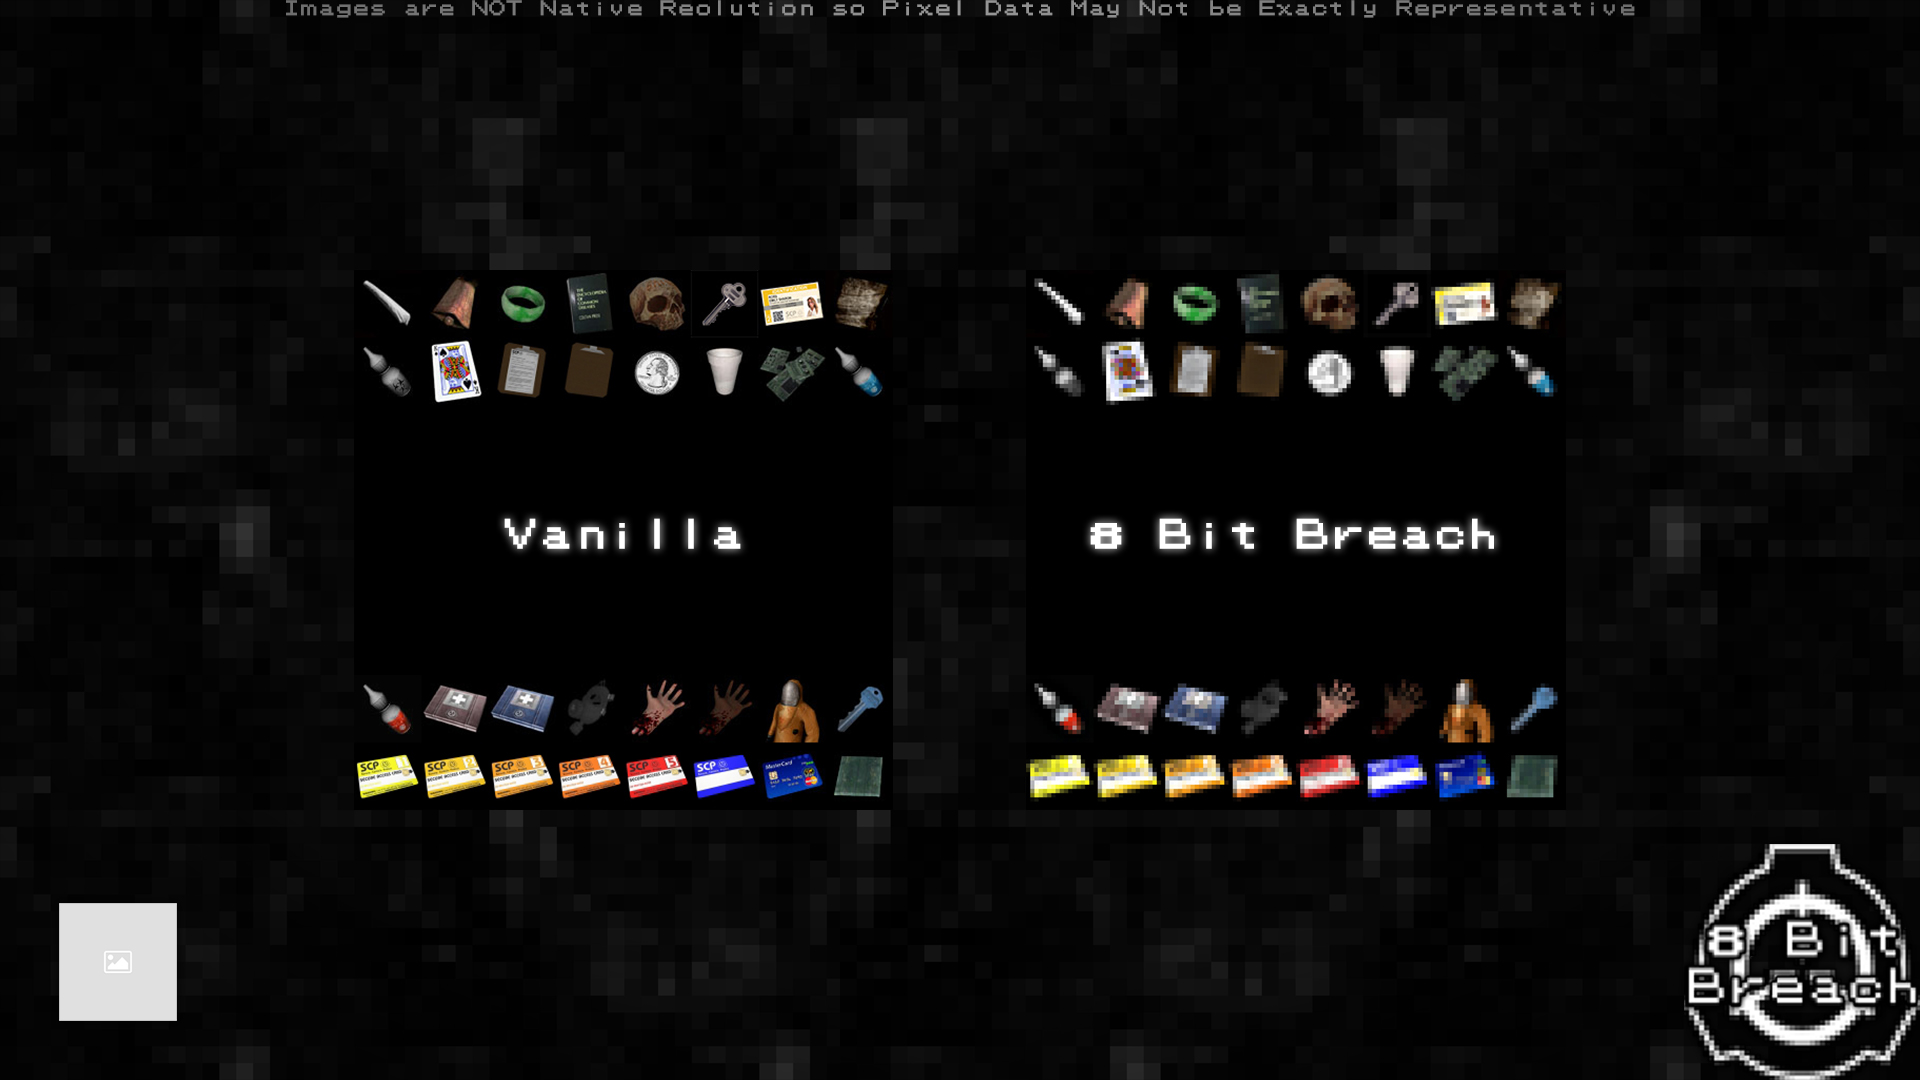 Comparison Image of Assorted Items